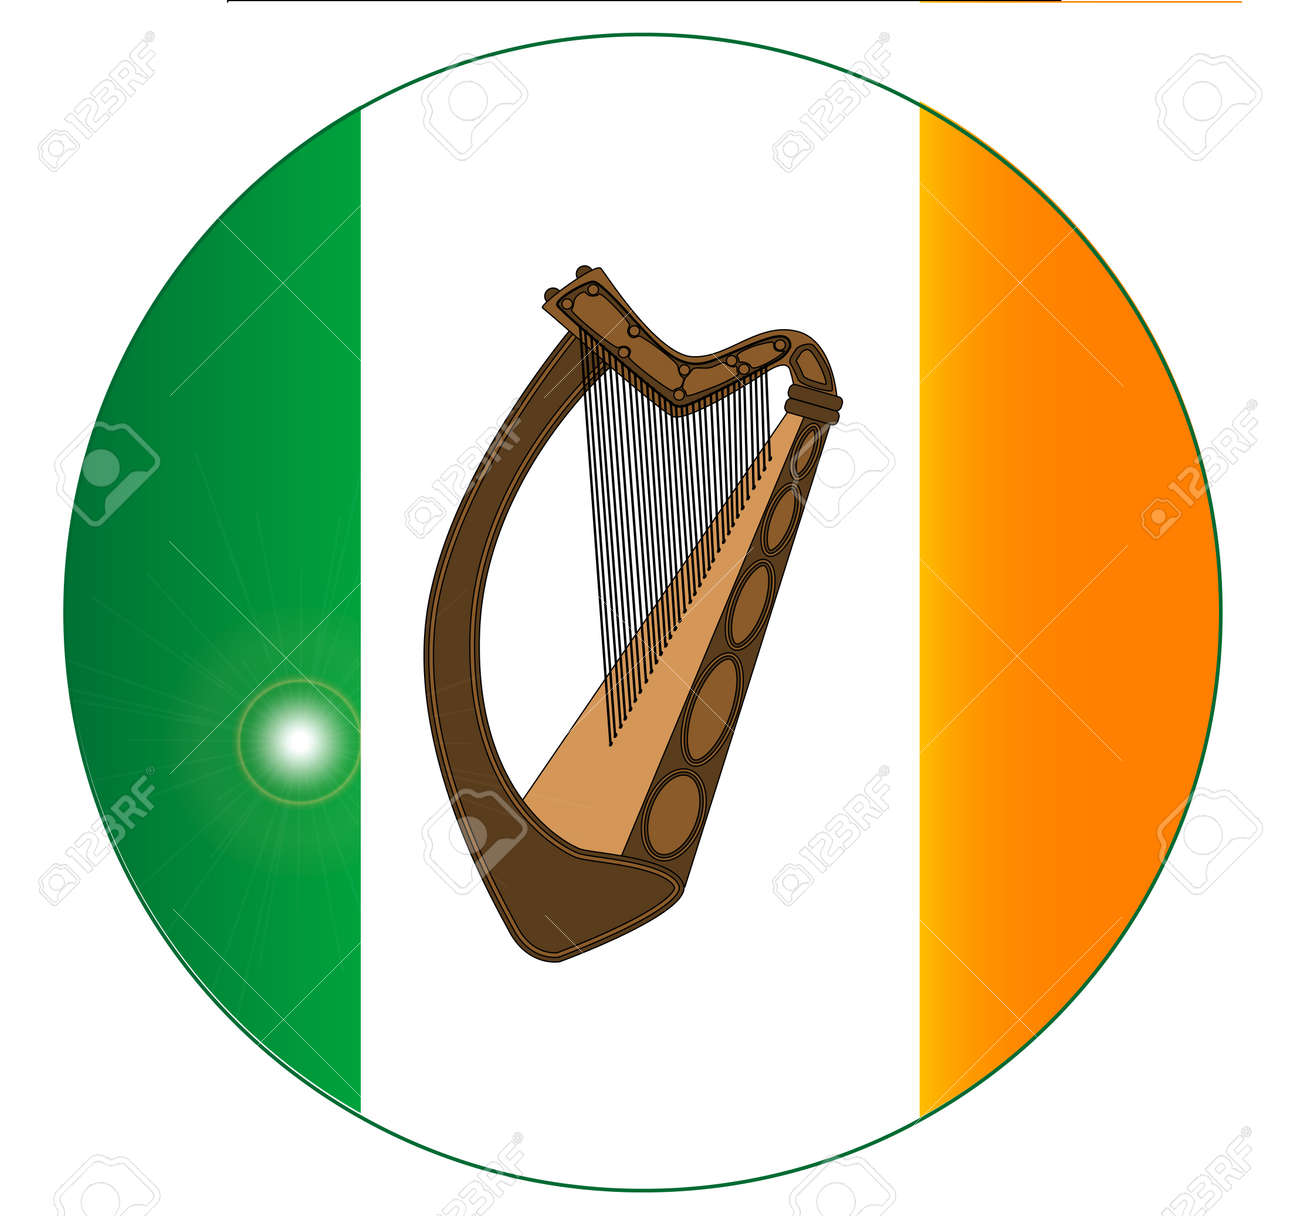 the flag of ireland with an added irish harp in the centre on